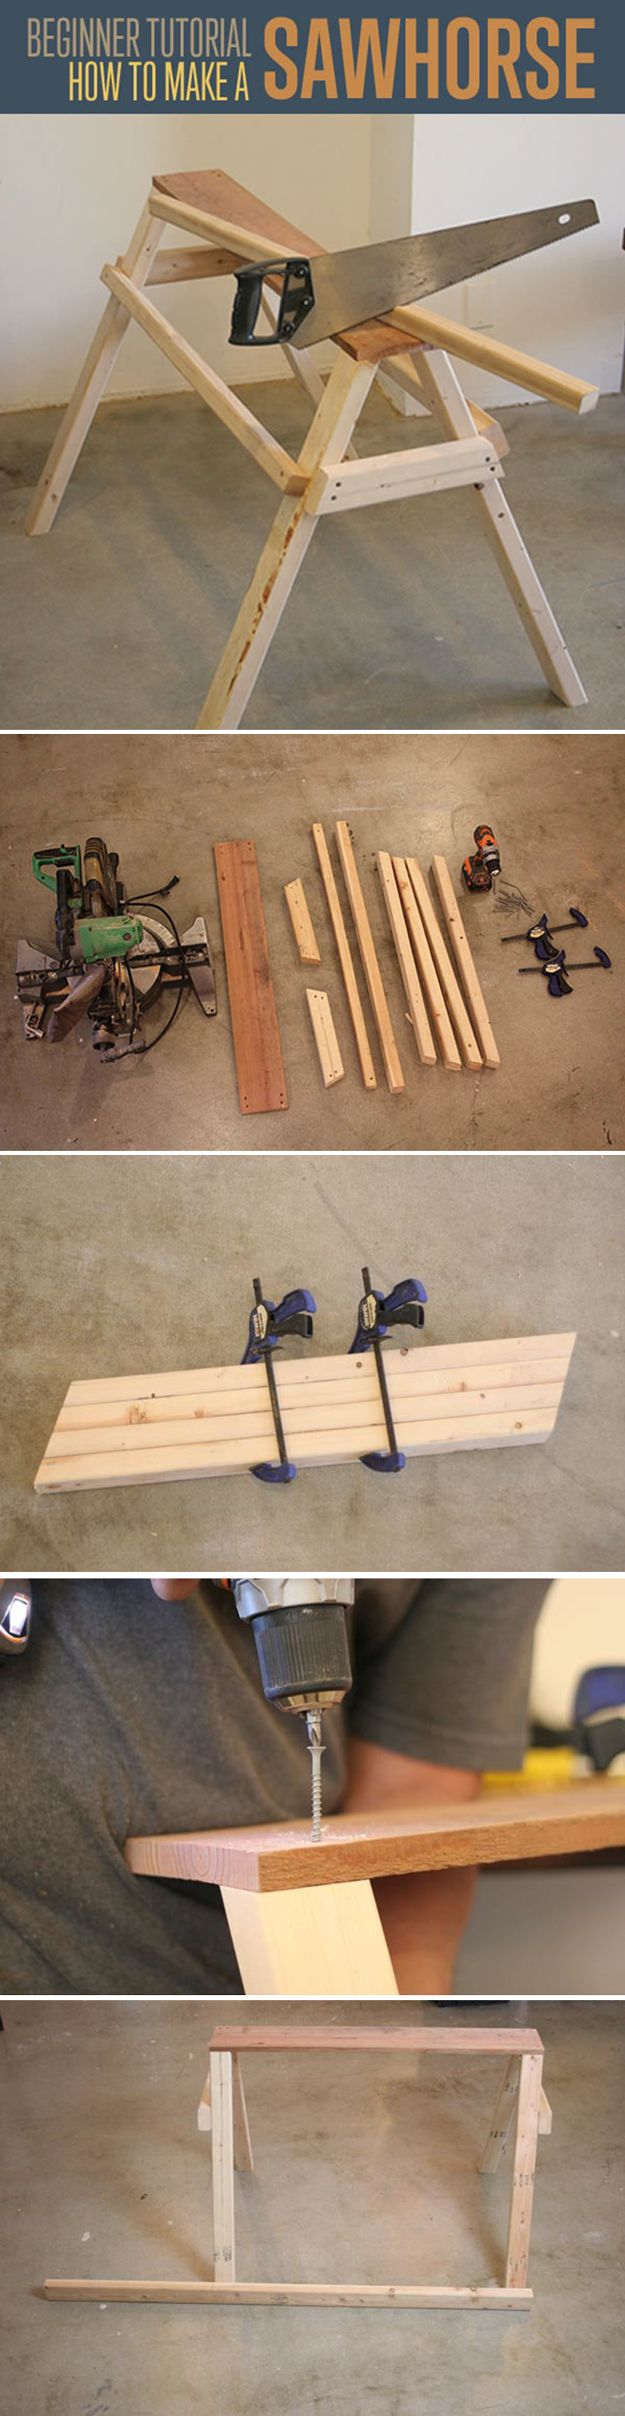 21 best images about saw horses on pinterest the family for Simple and easy diy projects